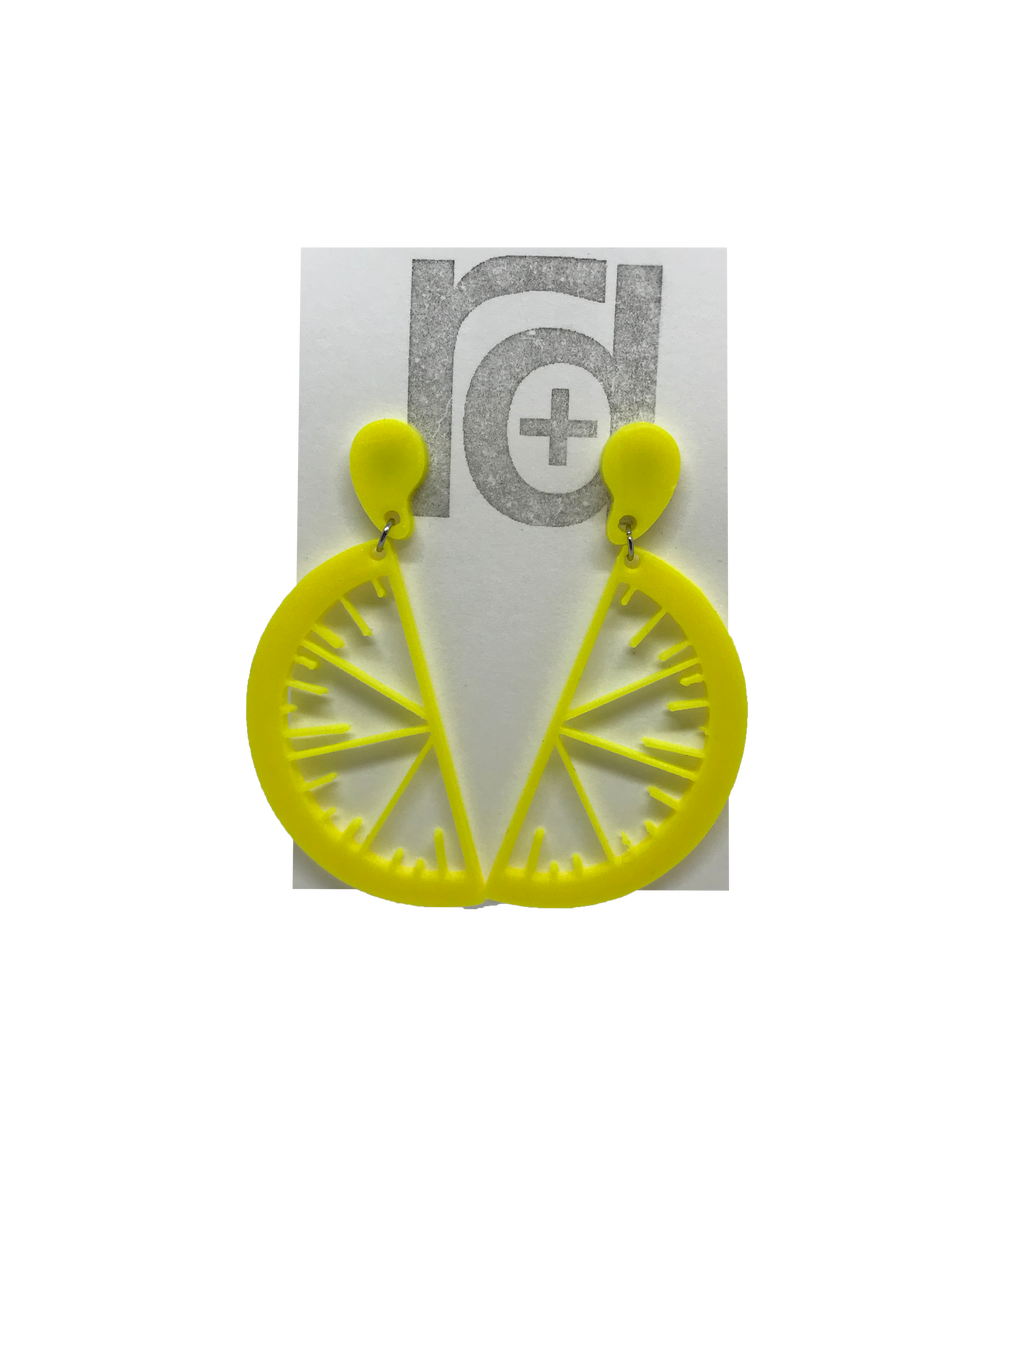 On a white paper earring card are two R+D earrings. They are two slices of fruit hanging from drops of fruit juice. These are yellow like bright lemons.